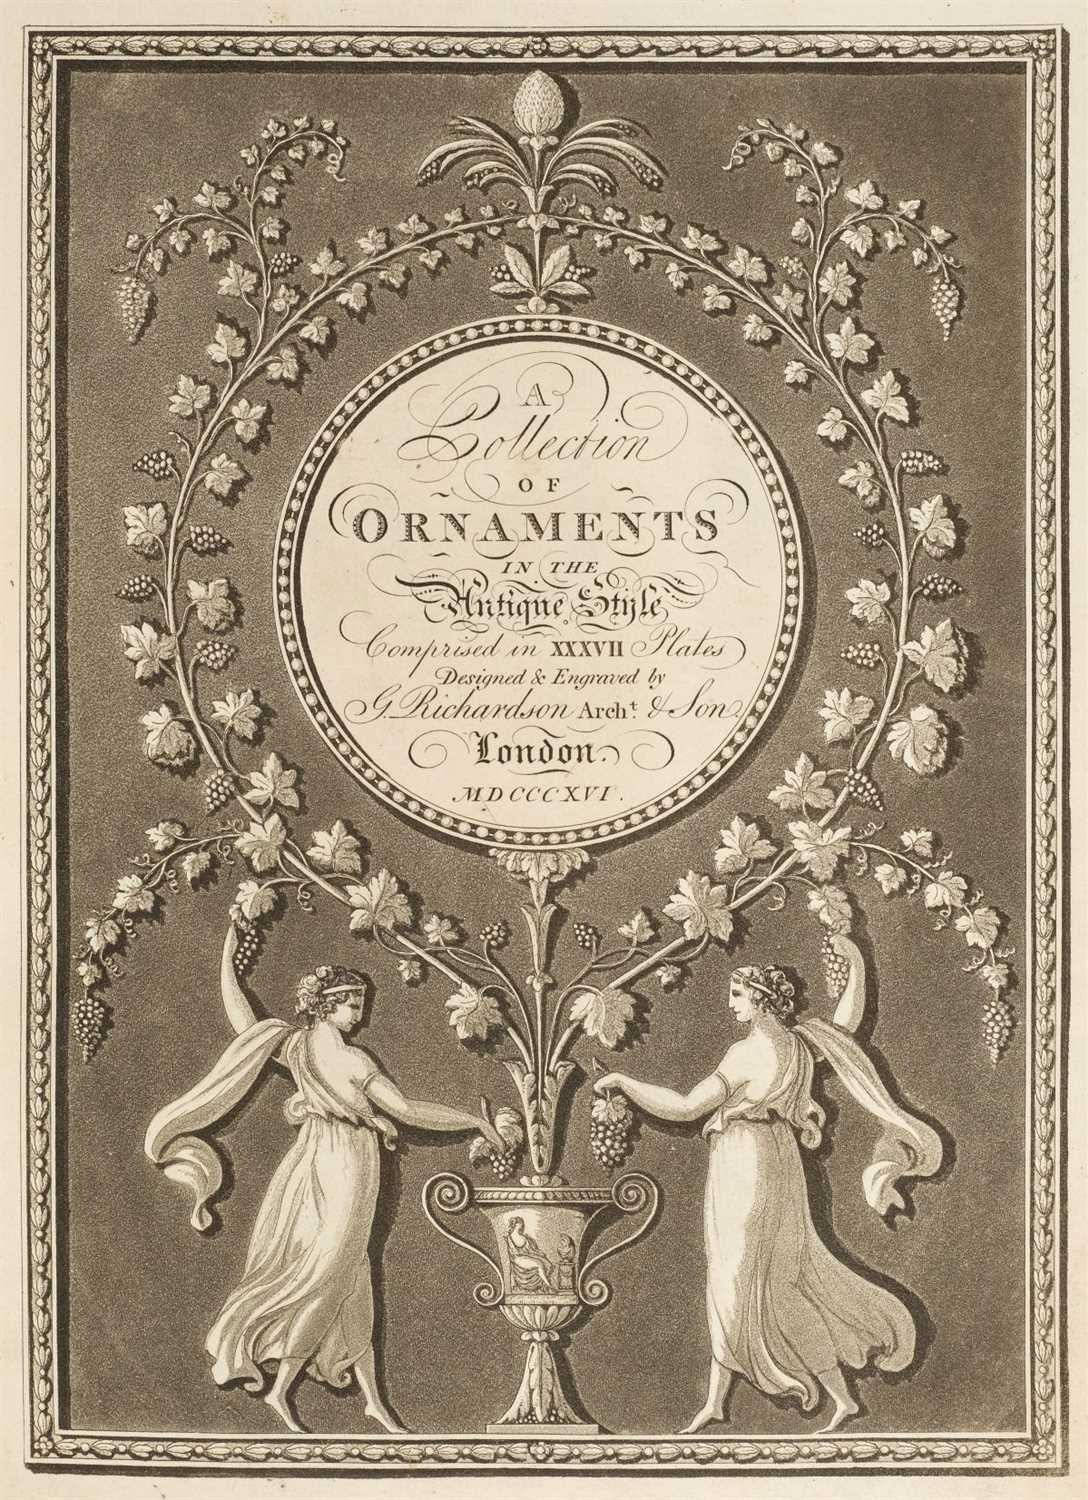 Richardson (George). A collection of Ornaments in the Antique Style, 1816